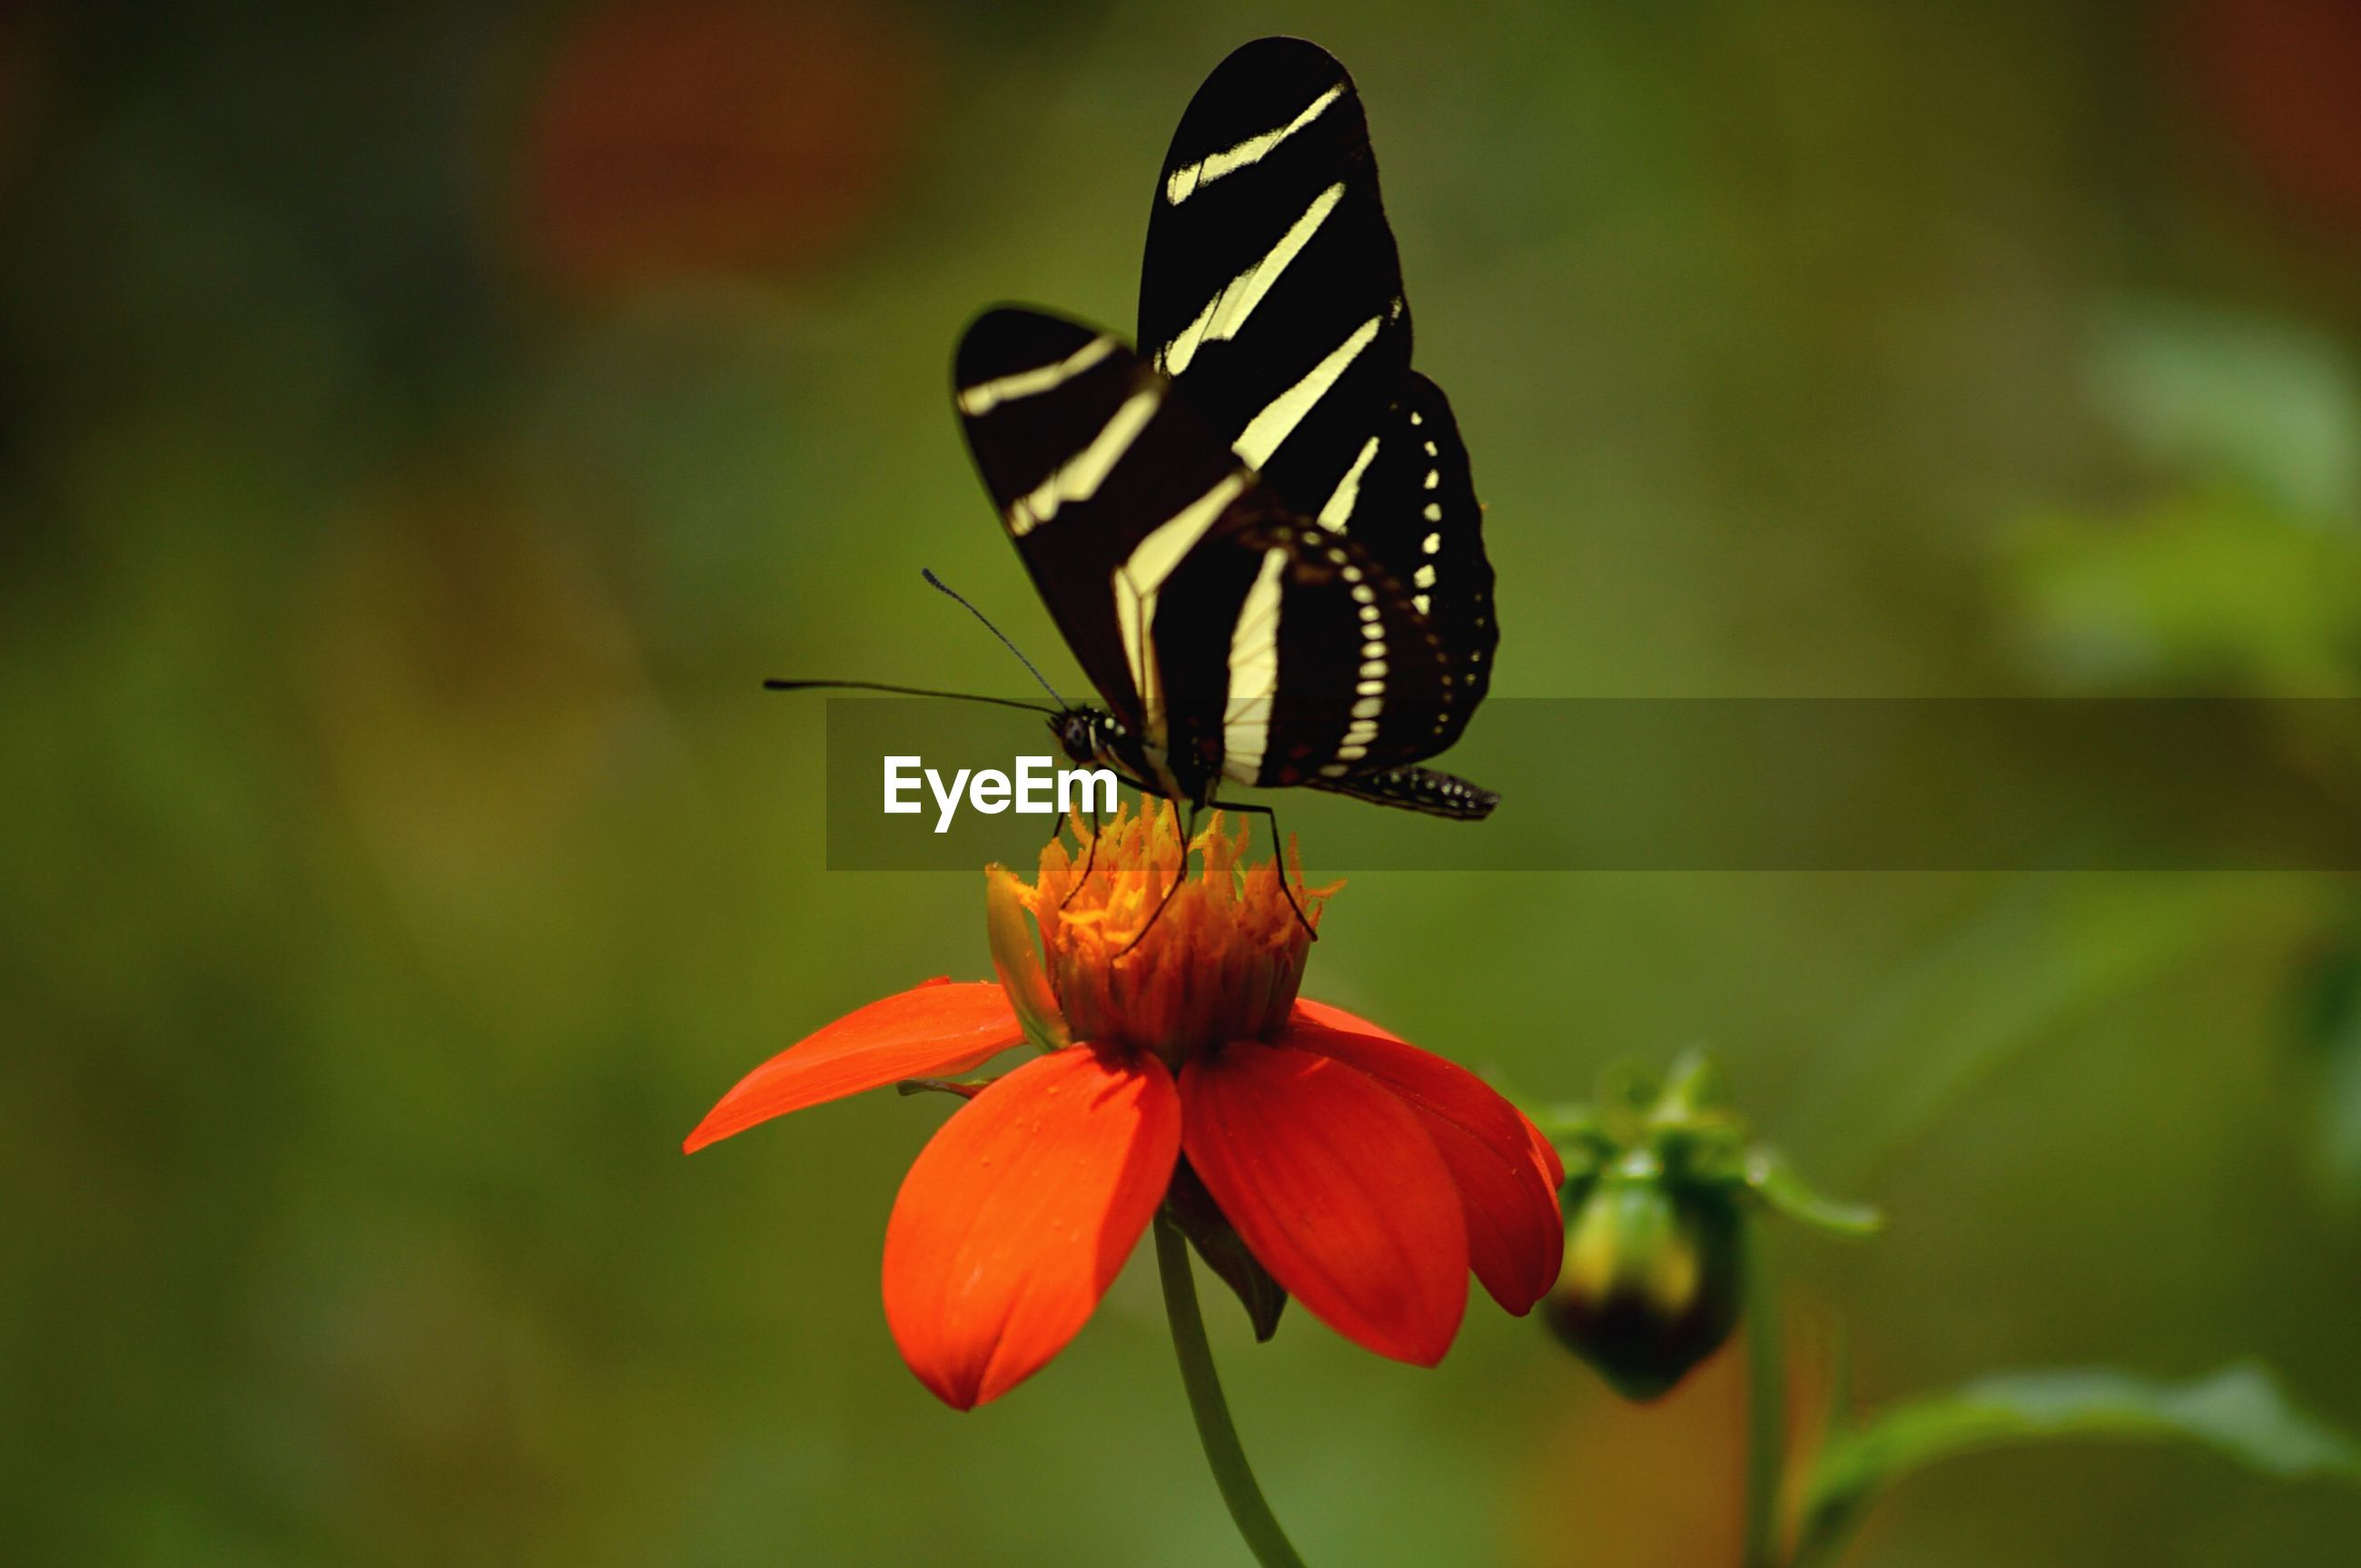 Side view of butterfly on flower against blurred background